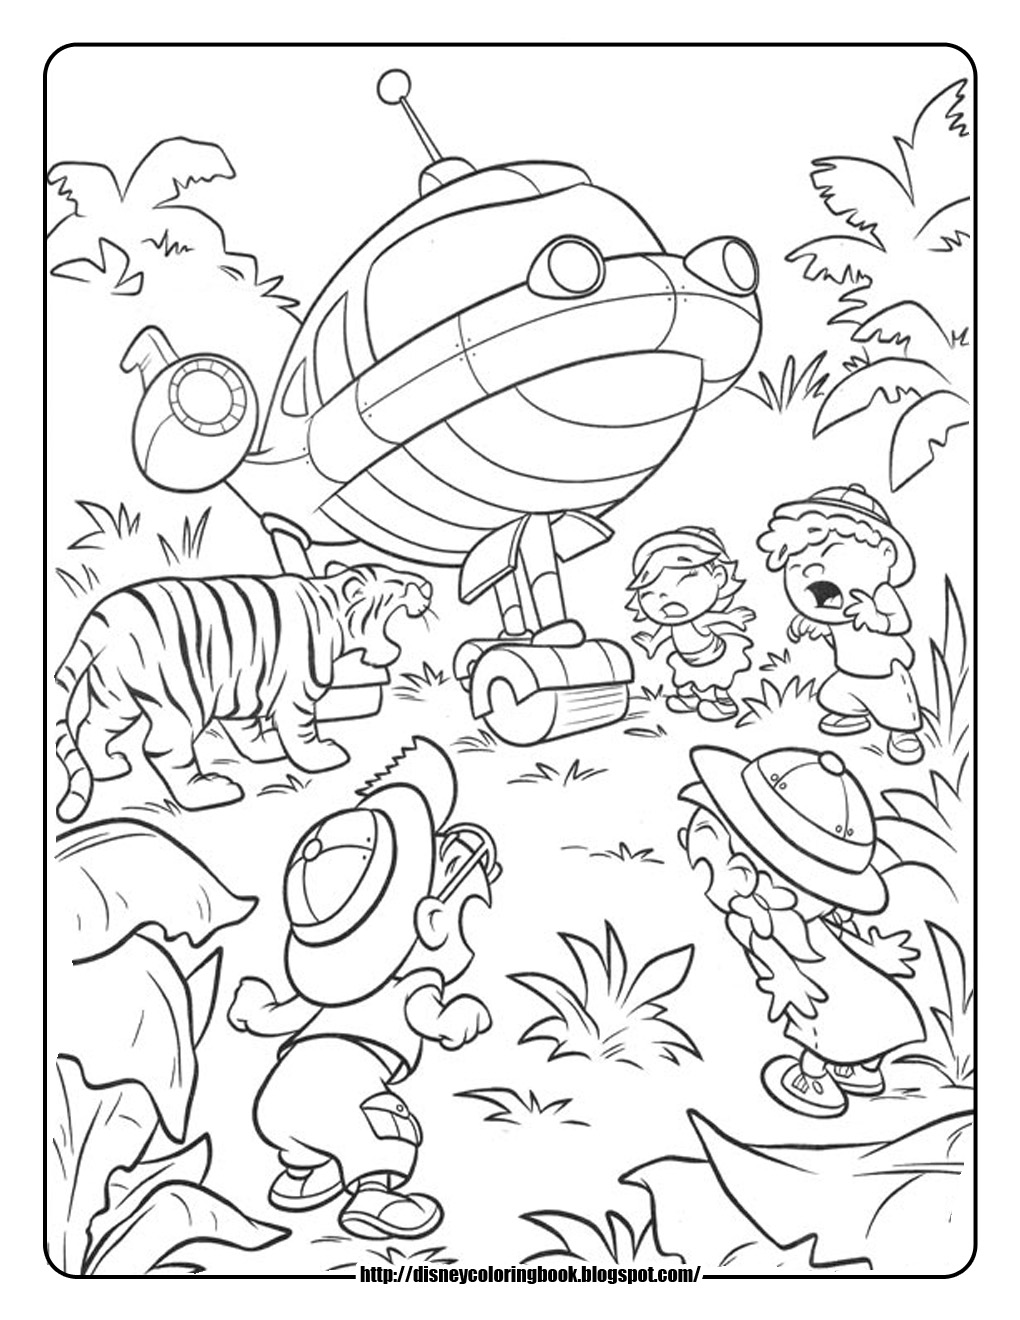 little einsteins online coloring pages - photo #11